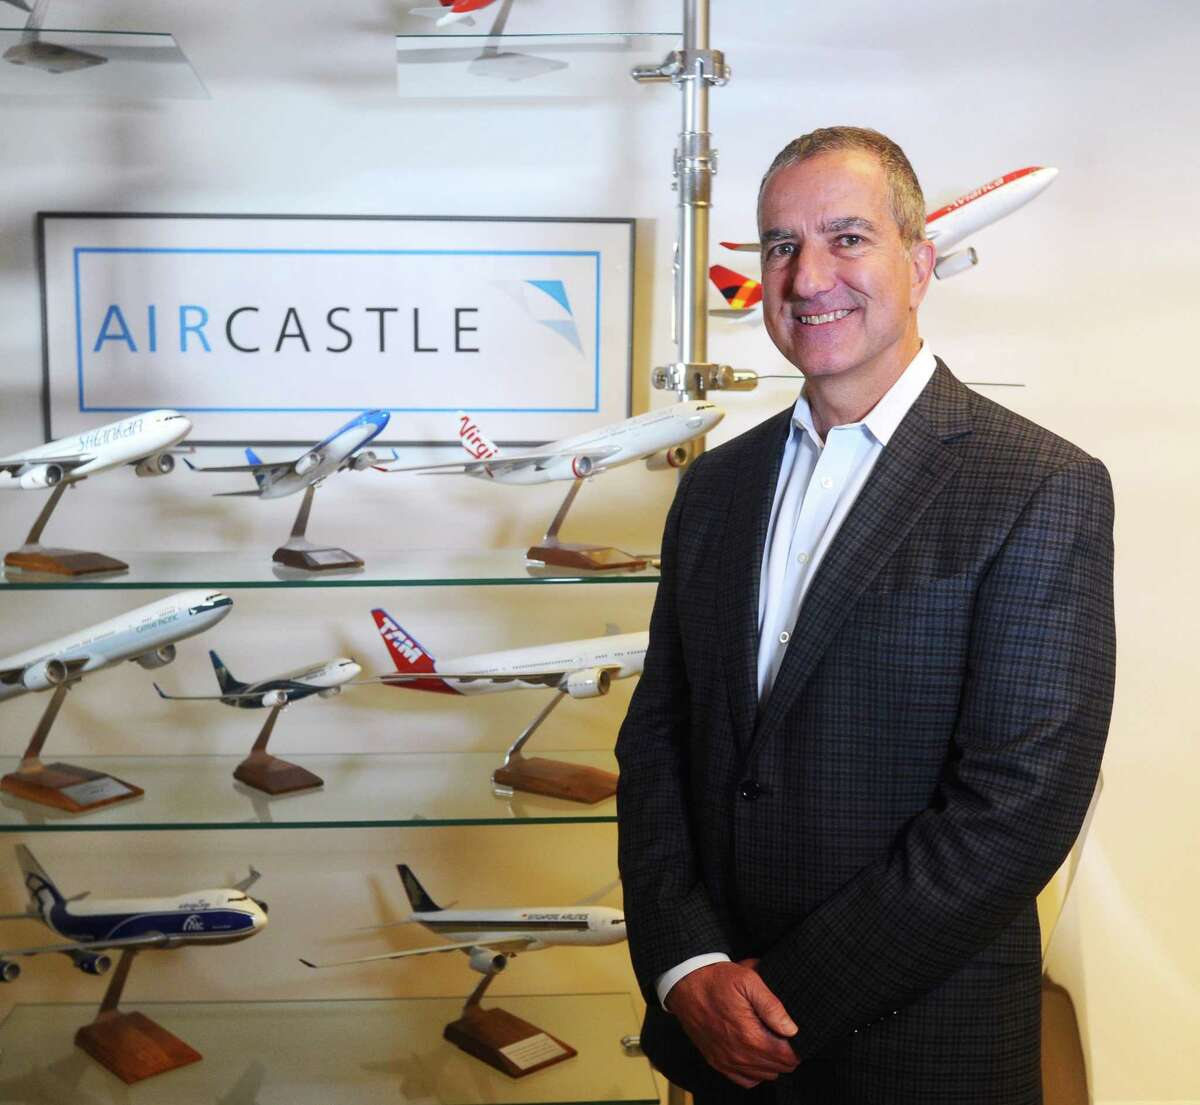 Aircastle CEO Mike Inglese